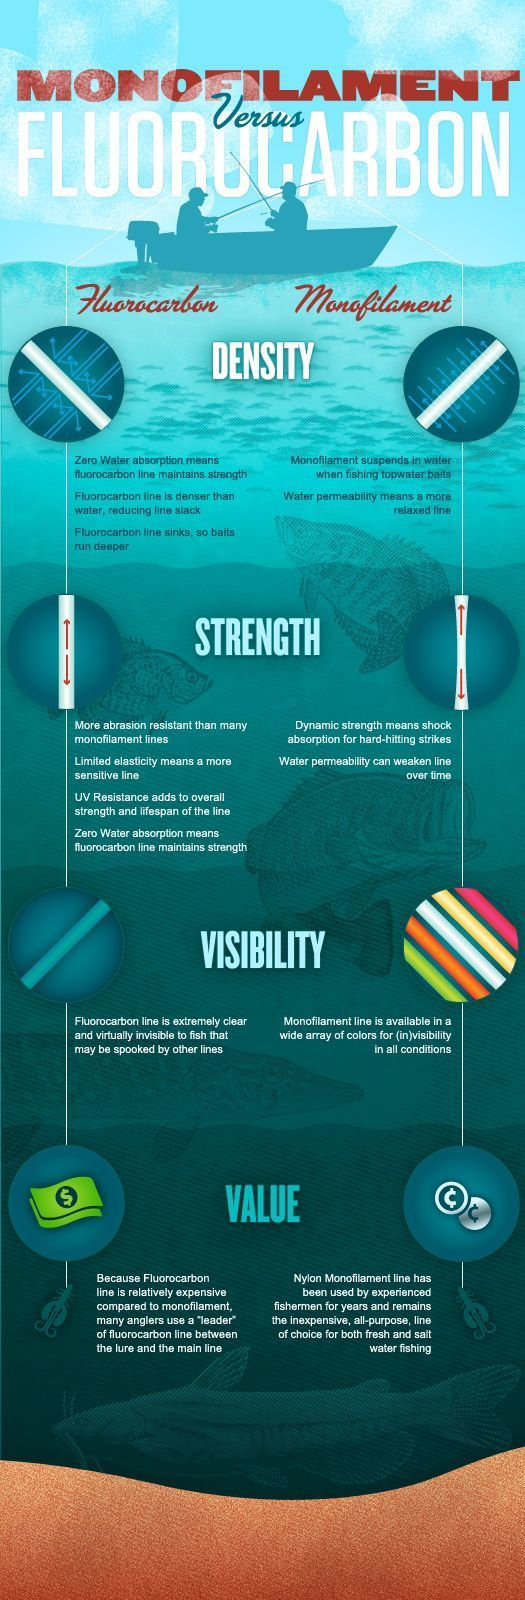 Mfionofilament vs. Fluorocarbon Fishing Line: The Facts [INFOGRAPHIC] - Wide Open Spaces